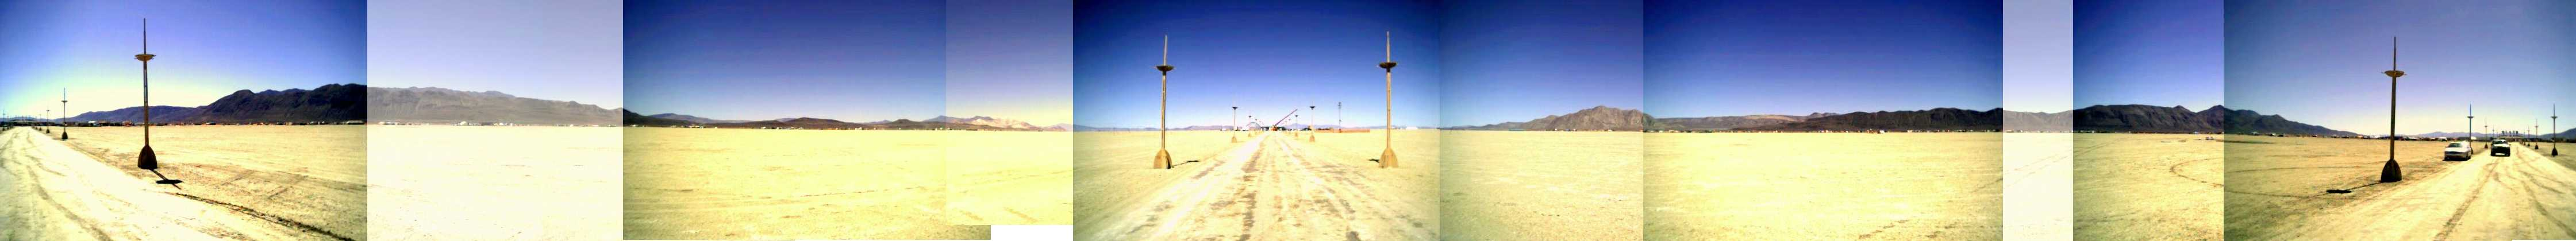 Panaroma of promenade, Burning Man 2004